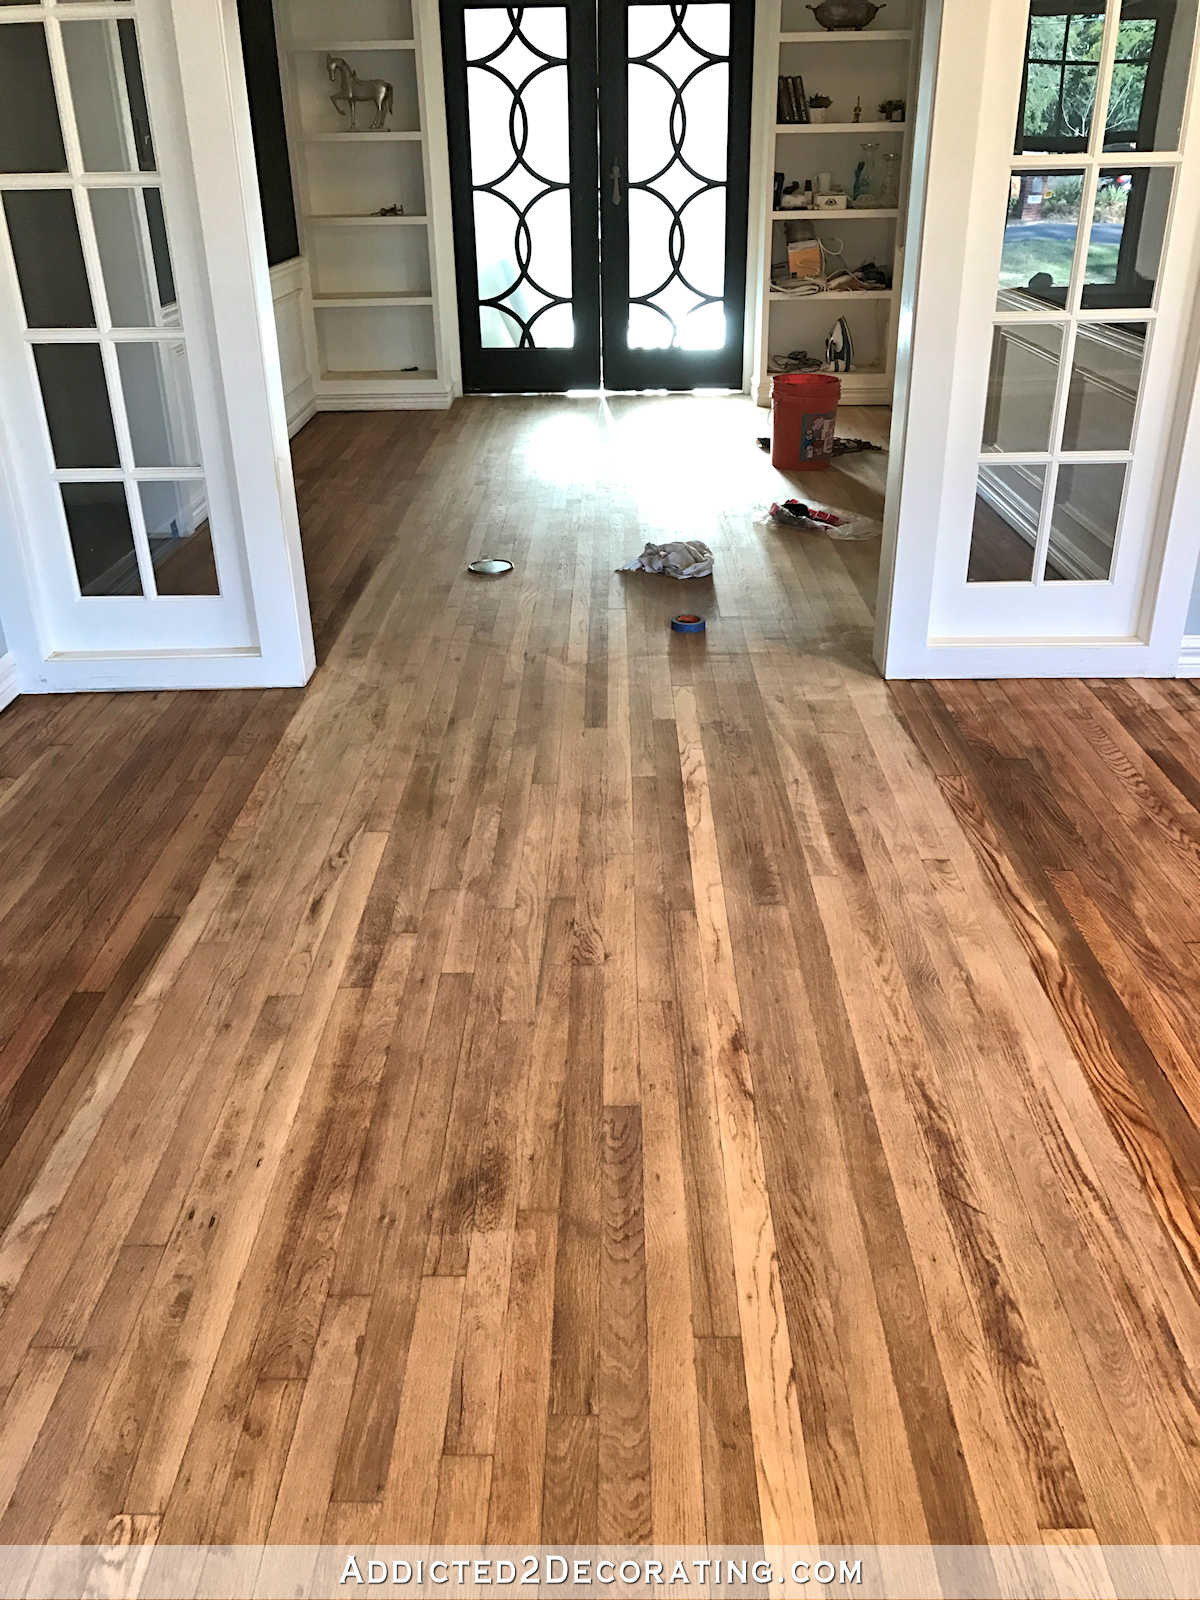 Project source 5 In Brown Oak Hardwood Flooring Of Adventures In Staining My Red Oak Hardwood Floors Products Process for Staining Red Oak Hardwood Floors 5 Music Room Wood Conditioner